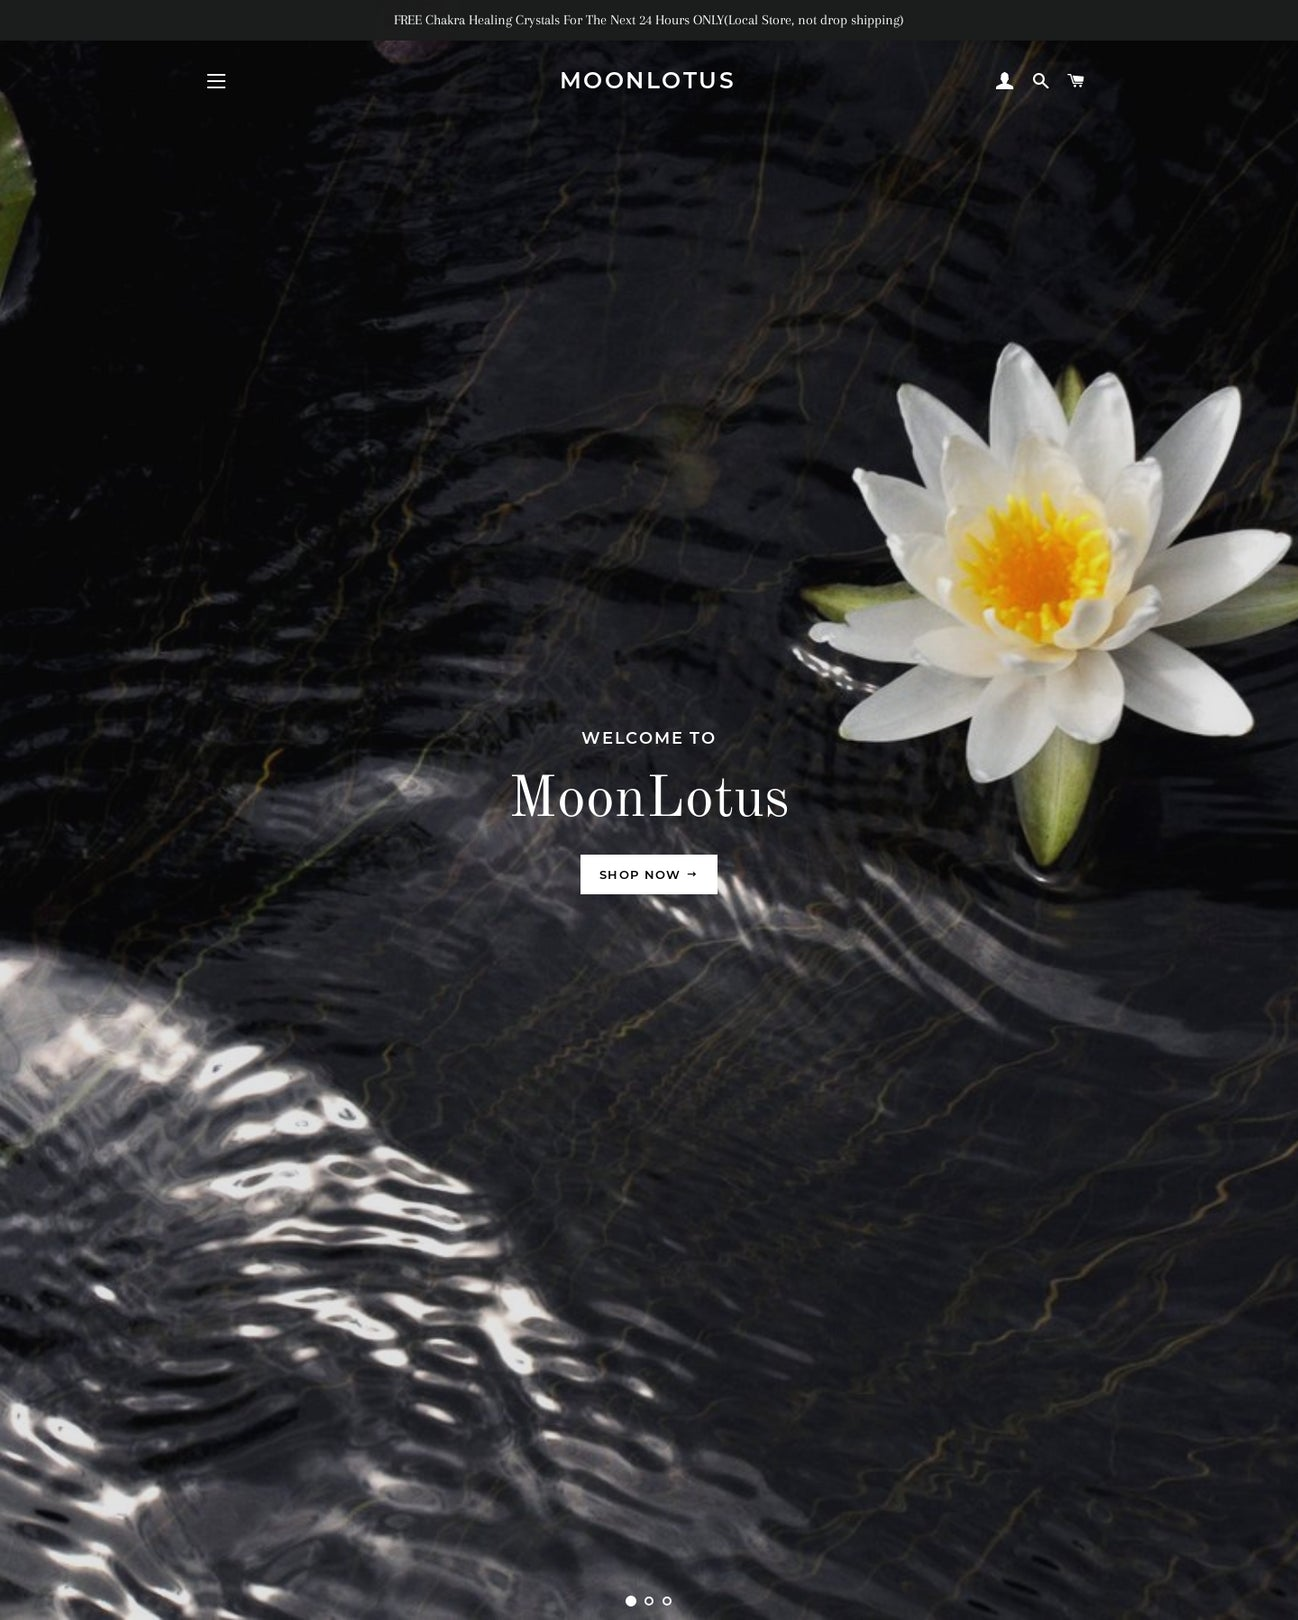 Moonlotus For Sale Buy An Online Business